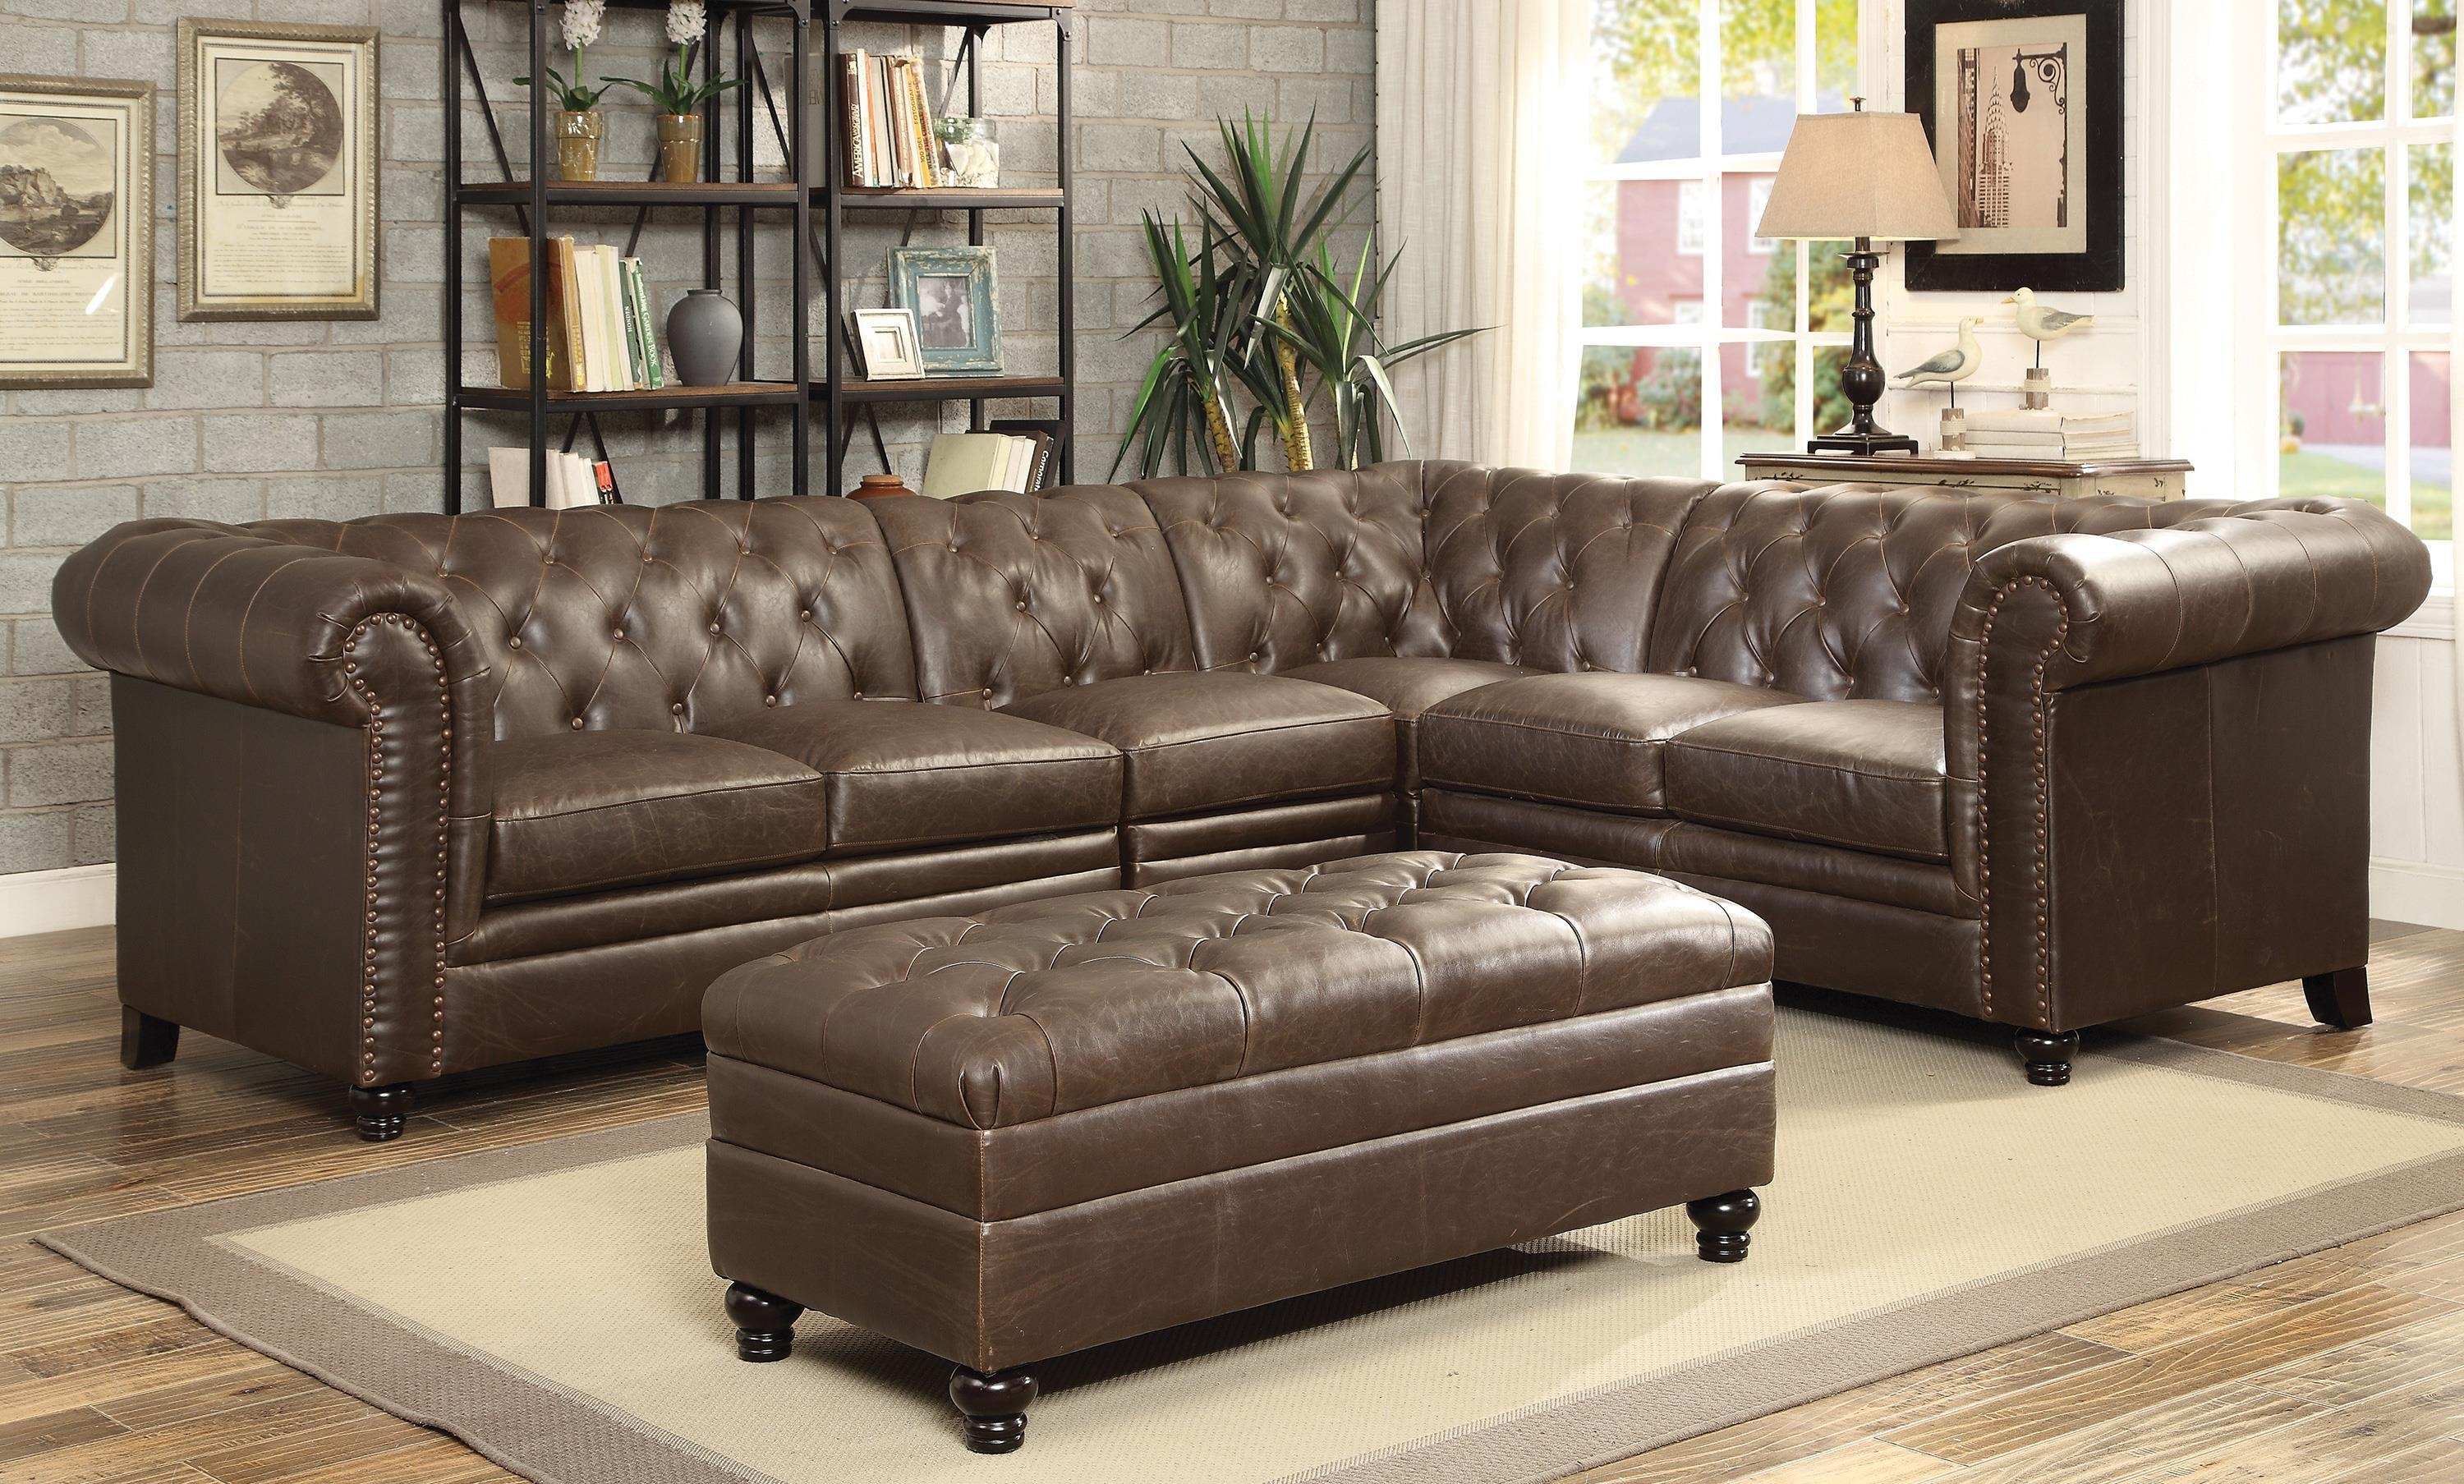 Sofa: Sectional Sleeper | Tufted Sectional Sofa | Tufted Sectional Throughout Tufted Sectional Sofa Chaise (Image 12 of 20)